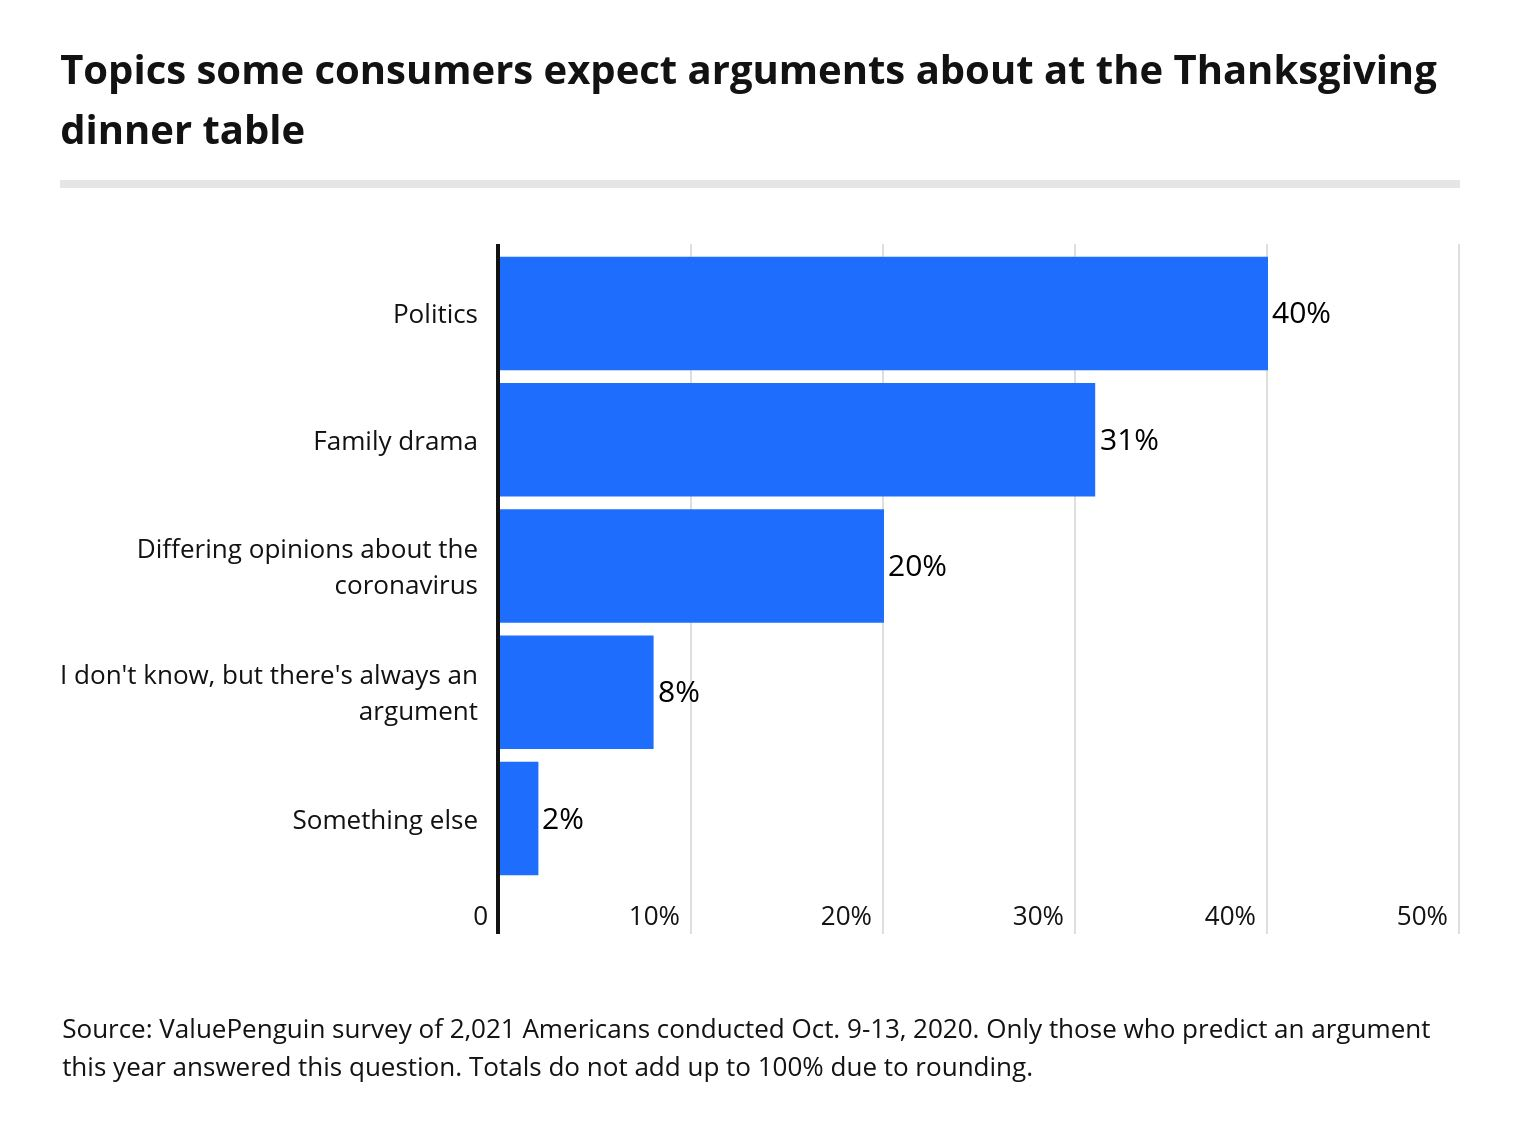 Topics some consumers expect to fight over at the Thanksgiving dinner table